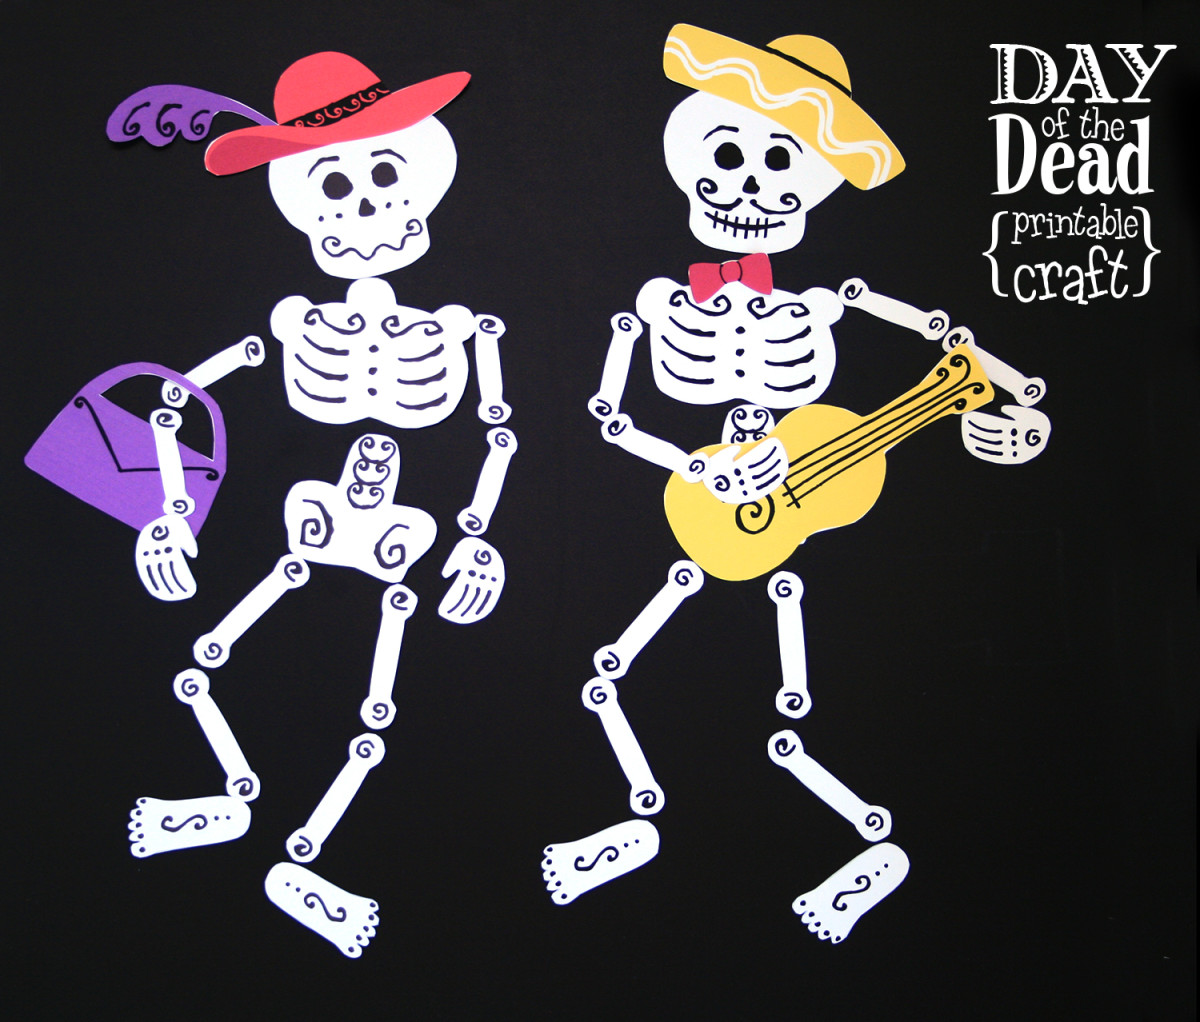 Day of the Dead Printables Craft - TodaysMama